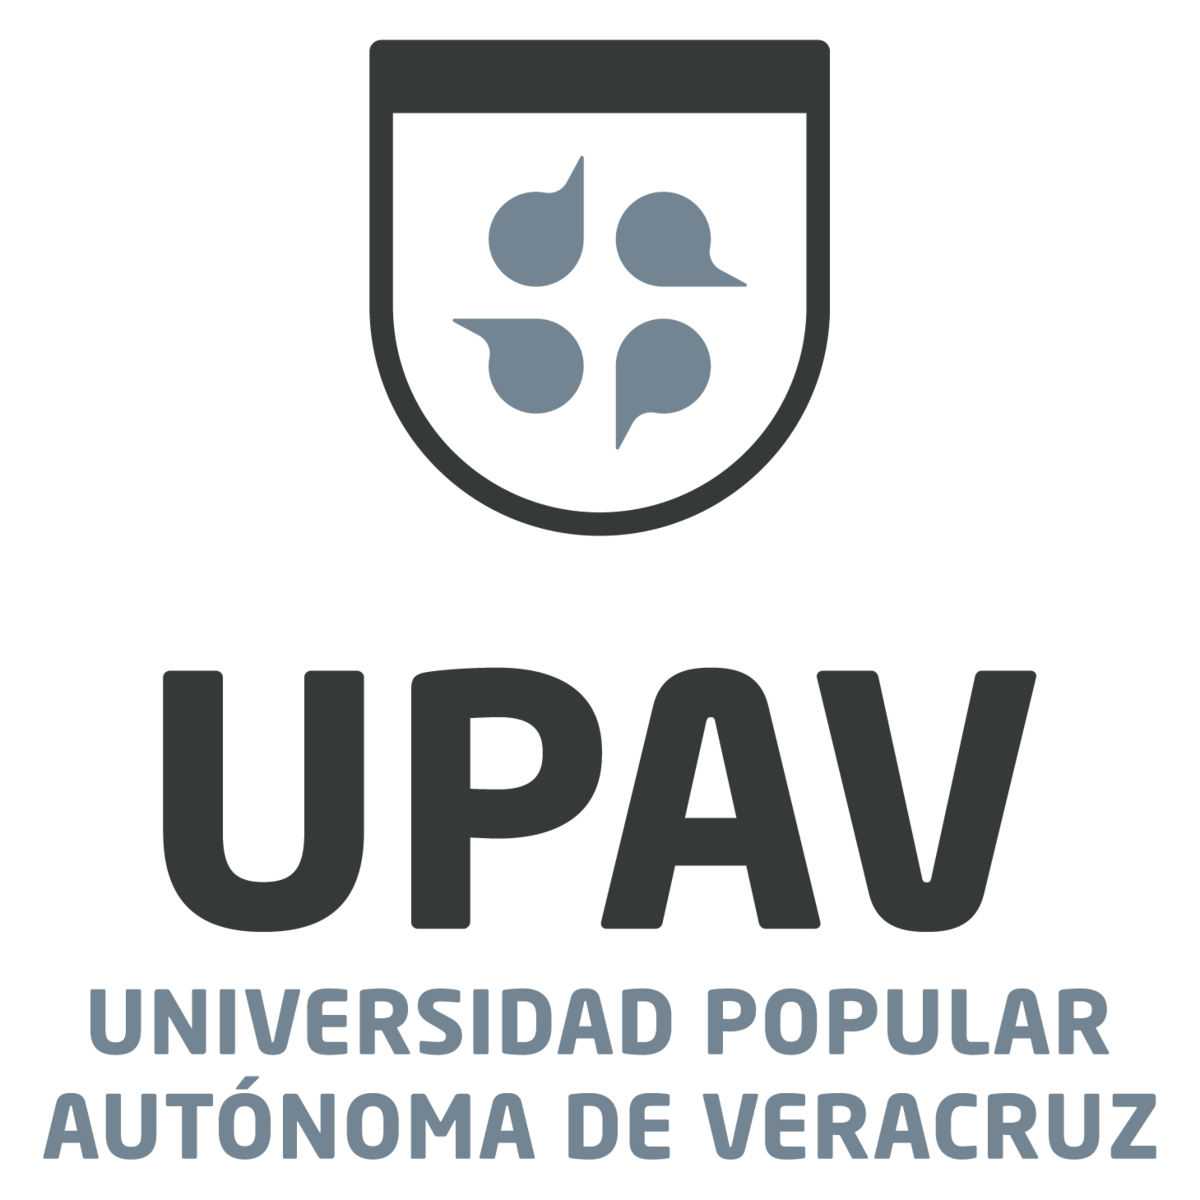 Universidad Popular Autónoma de Veracruz - Wikipedia, la ...